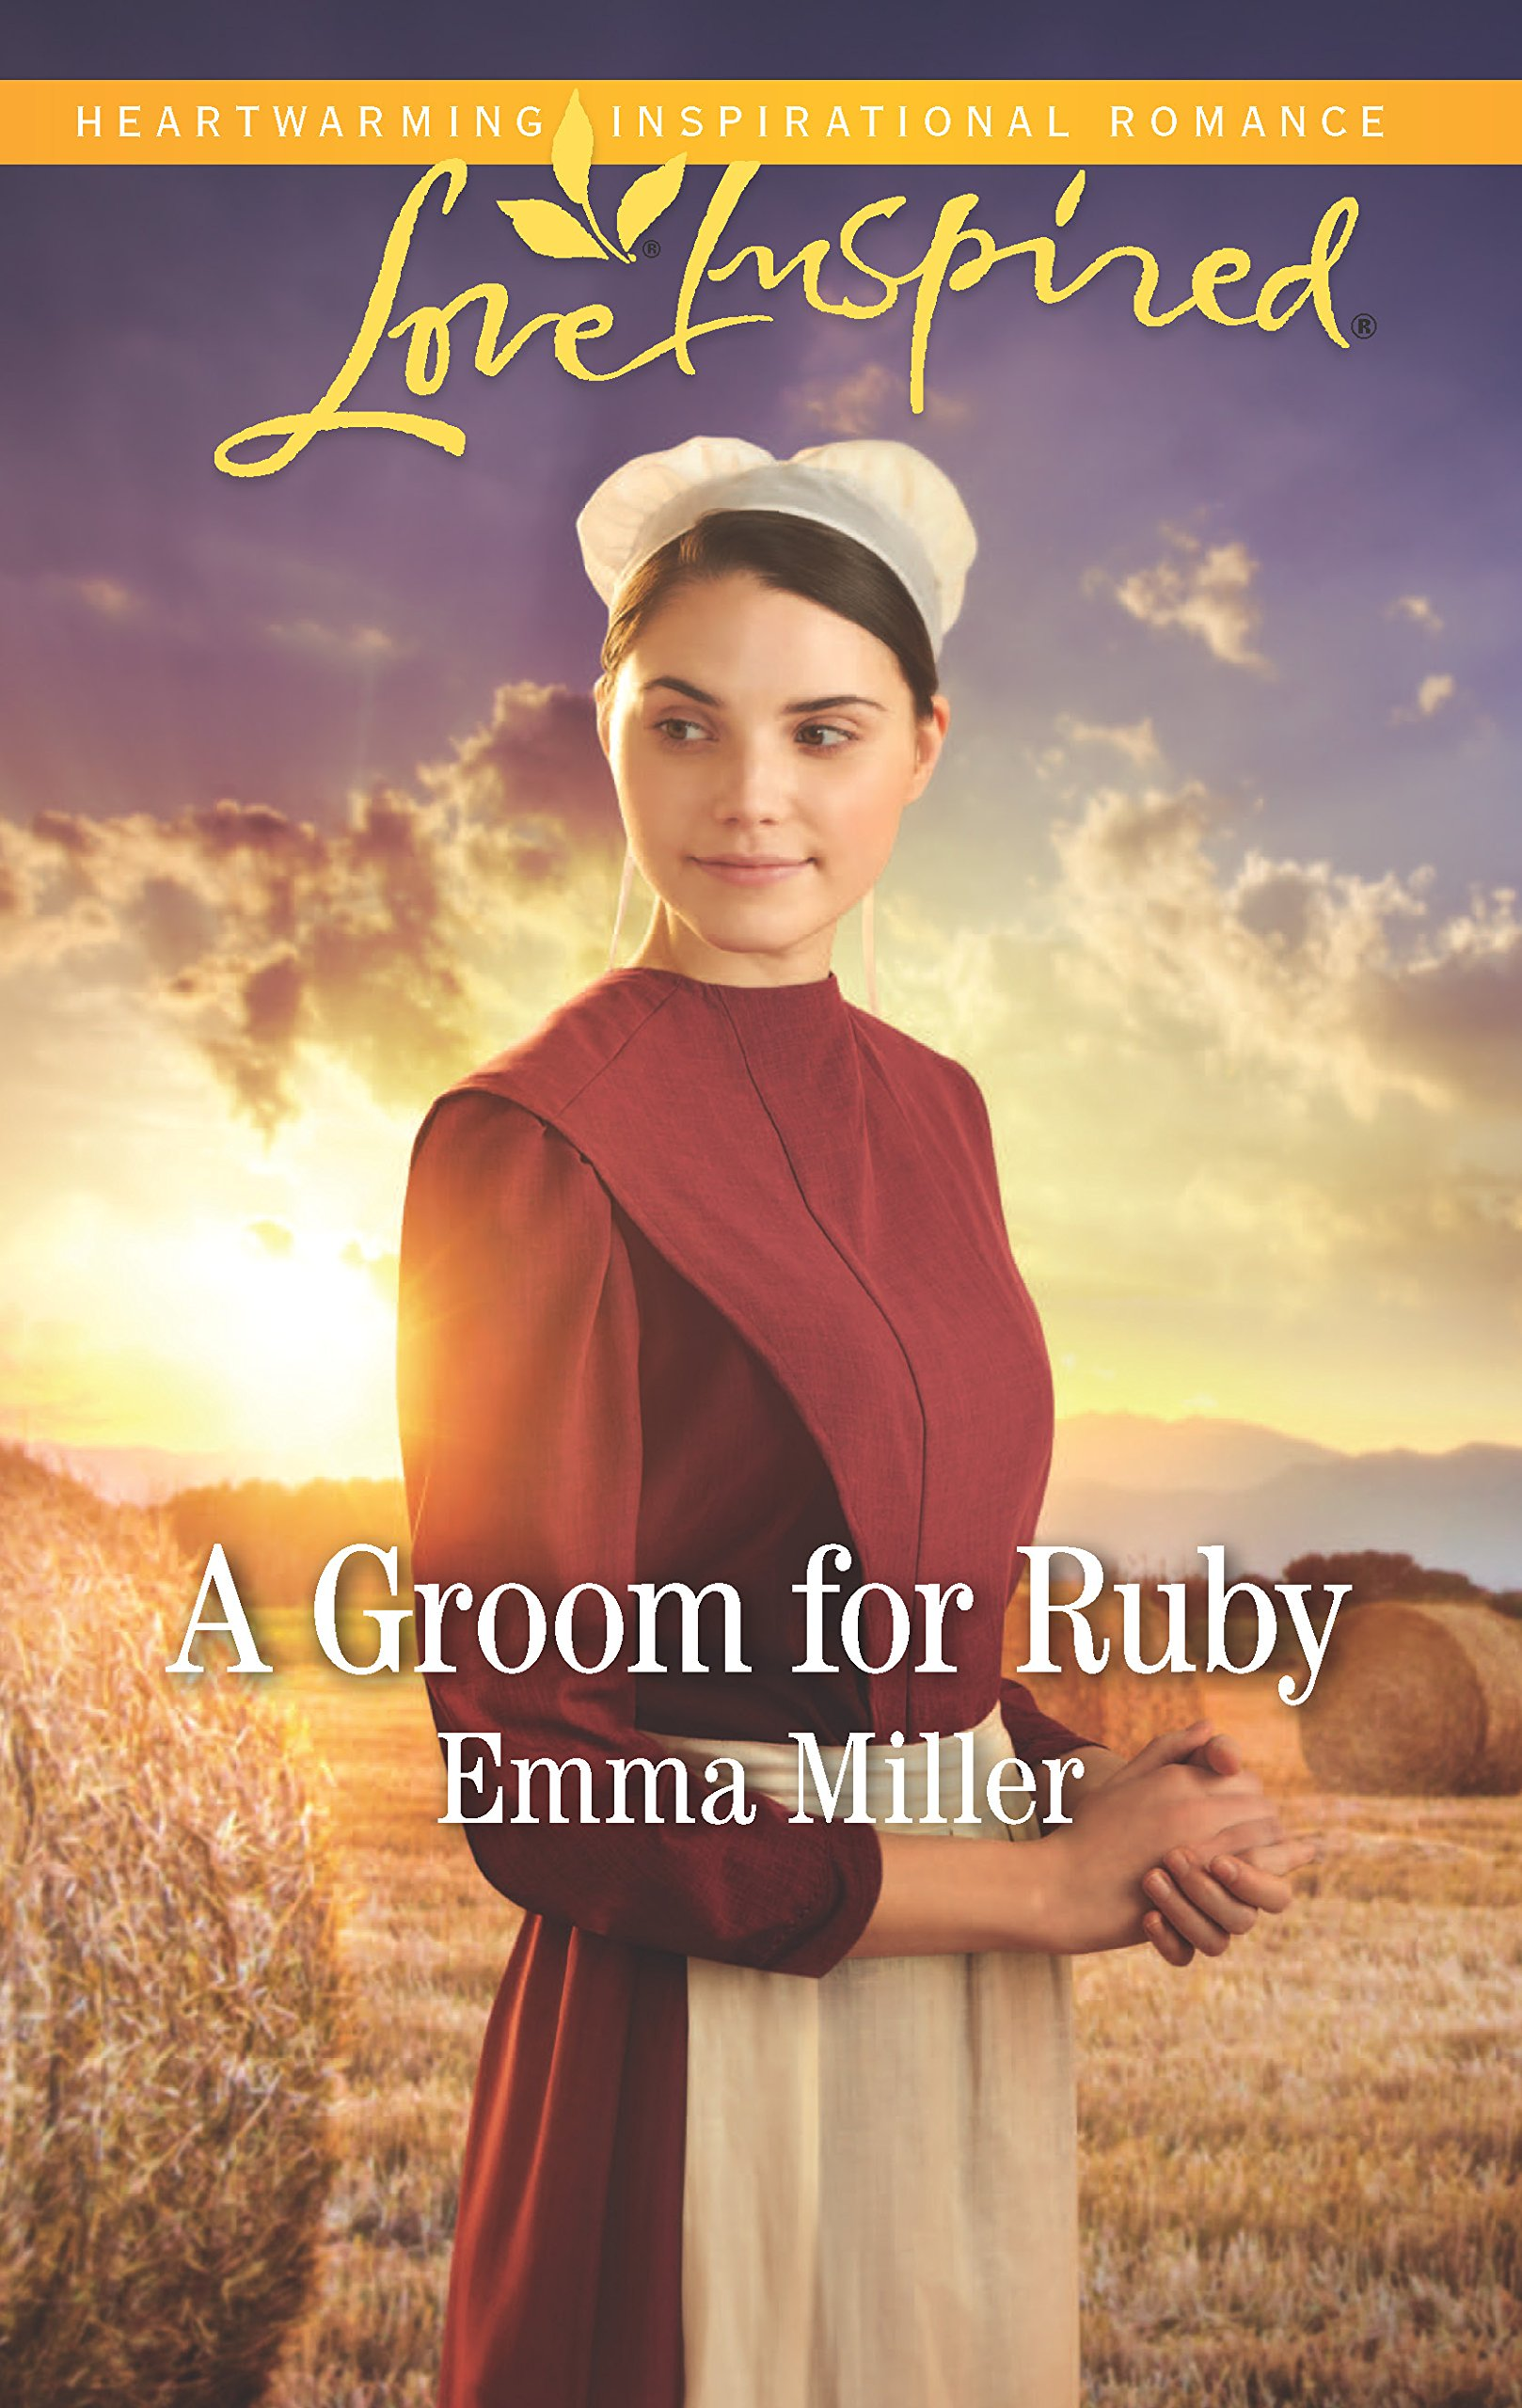 A Groom for Ruby (The Amish Matchmaker): Emma Miller: 9780373622900:  Amazon.com: Books